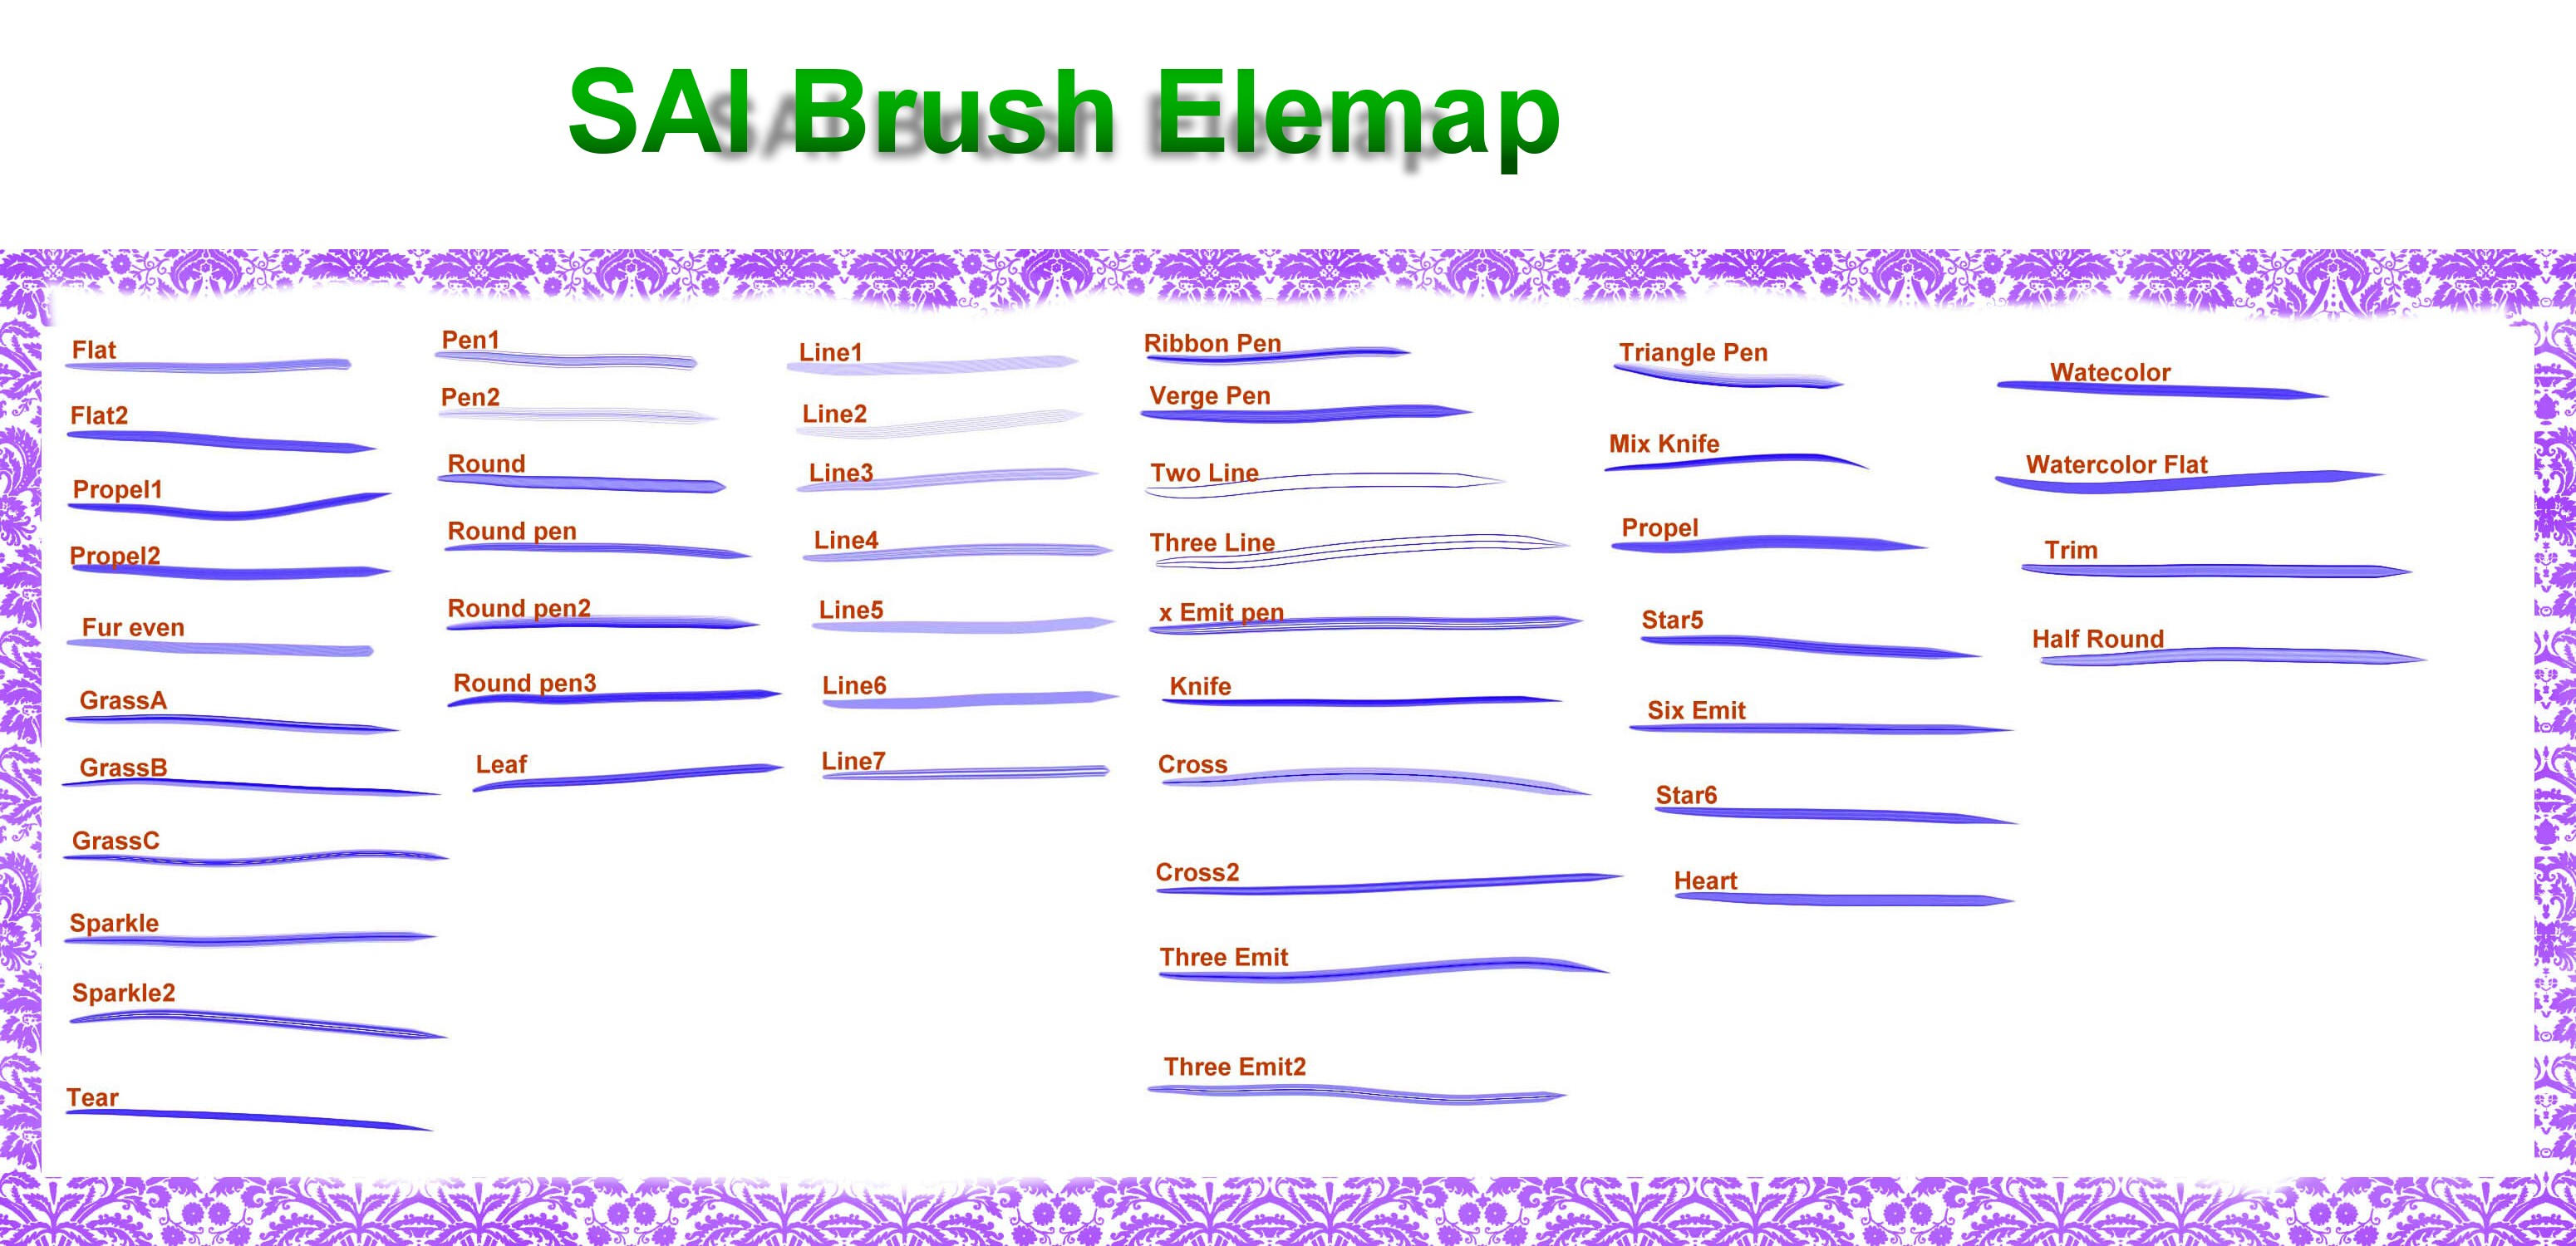 SAI Brush---elemap by chatenoir